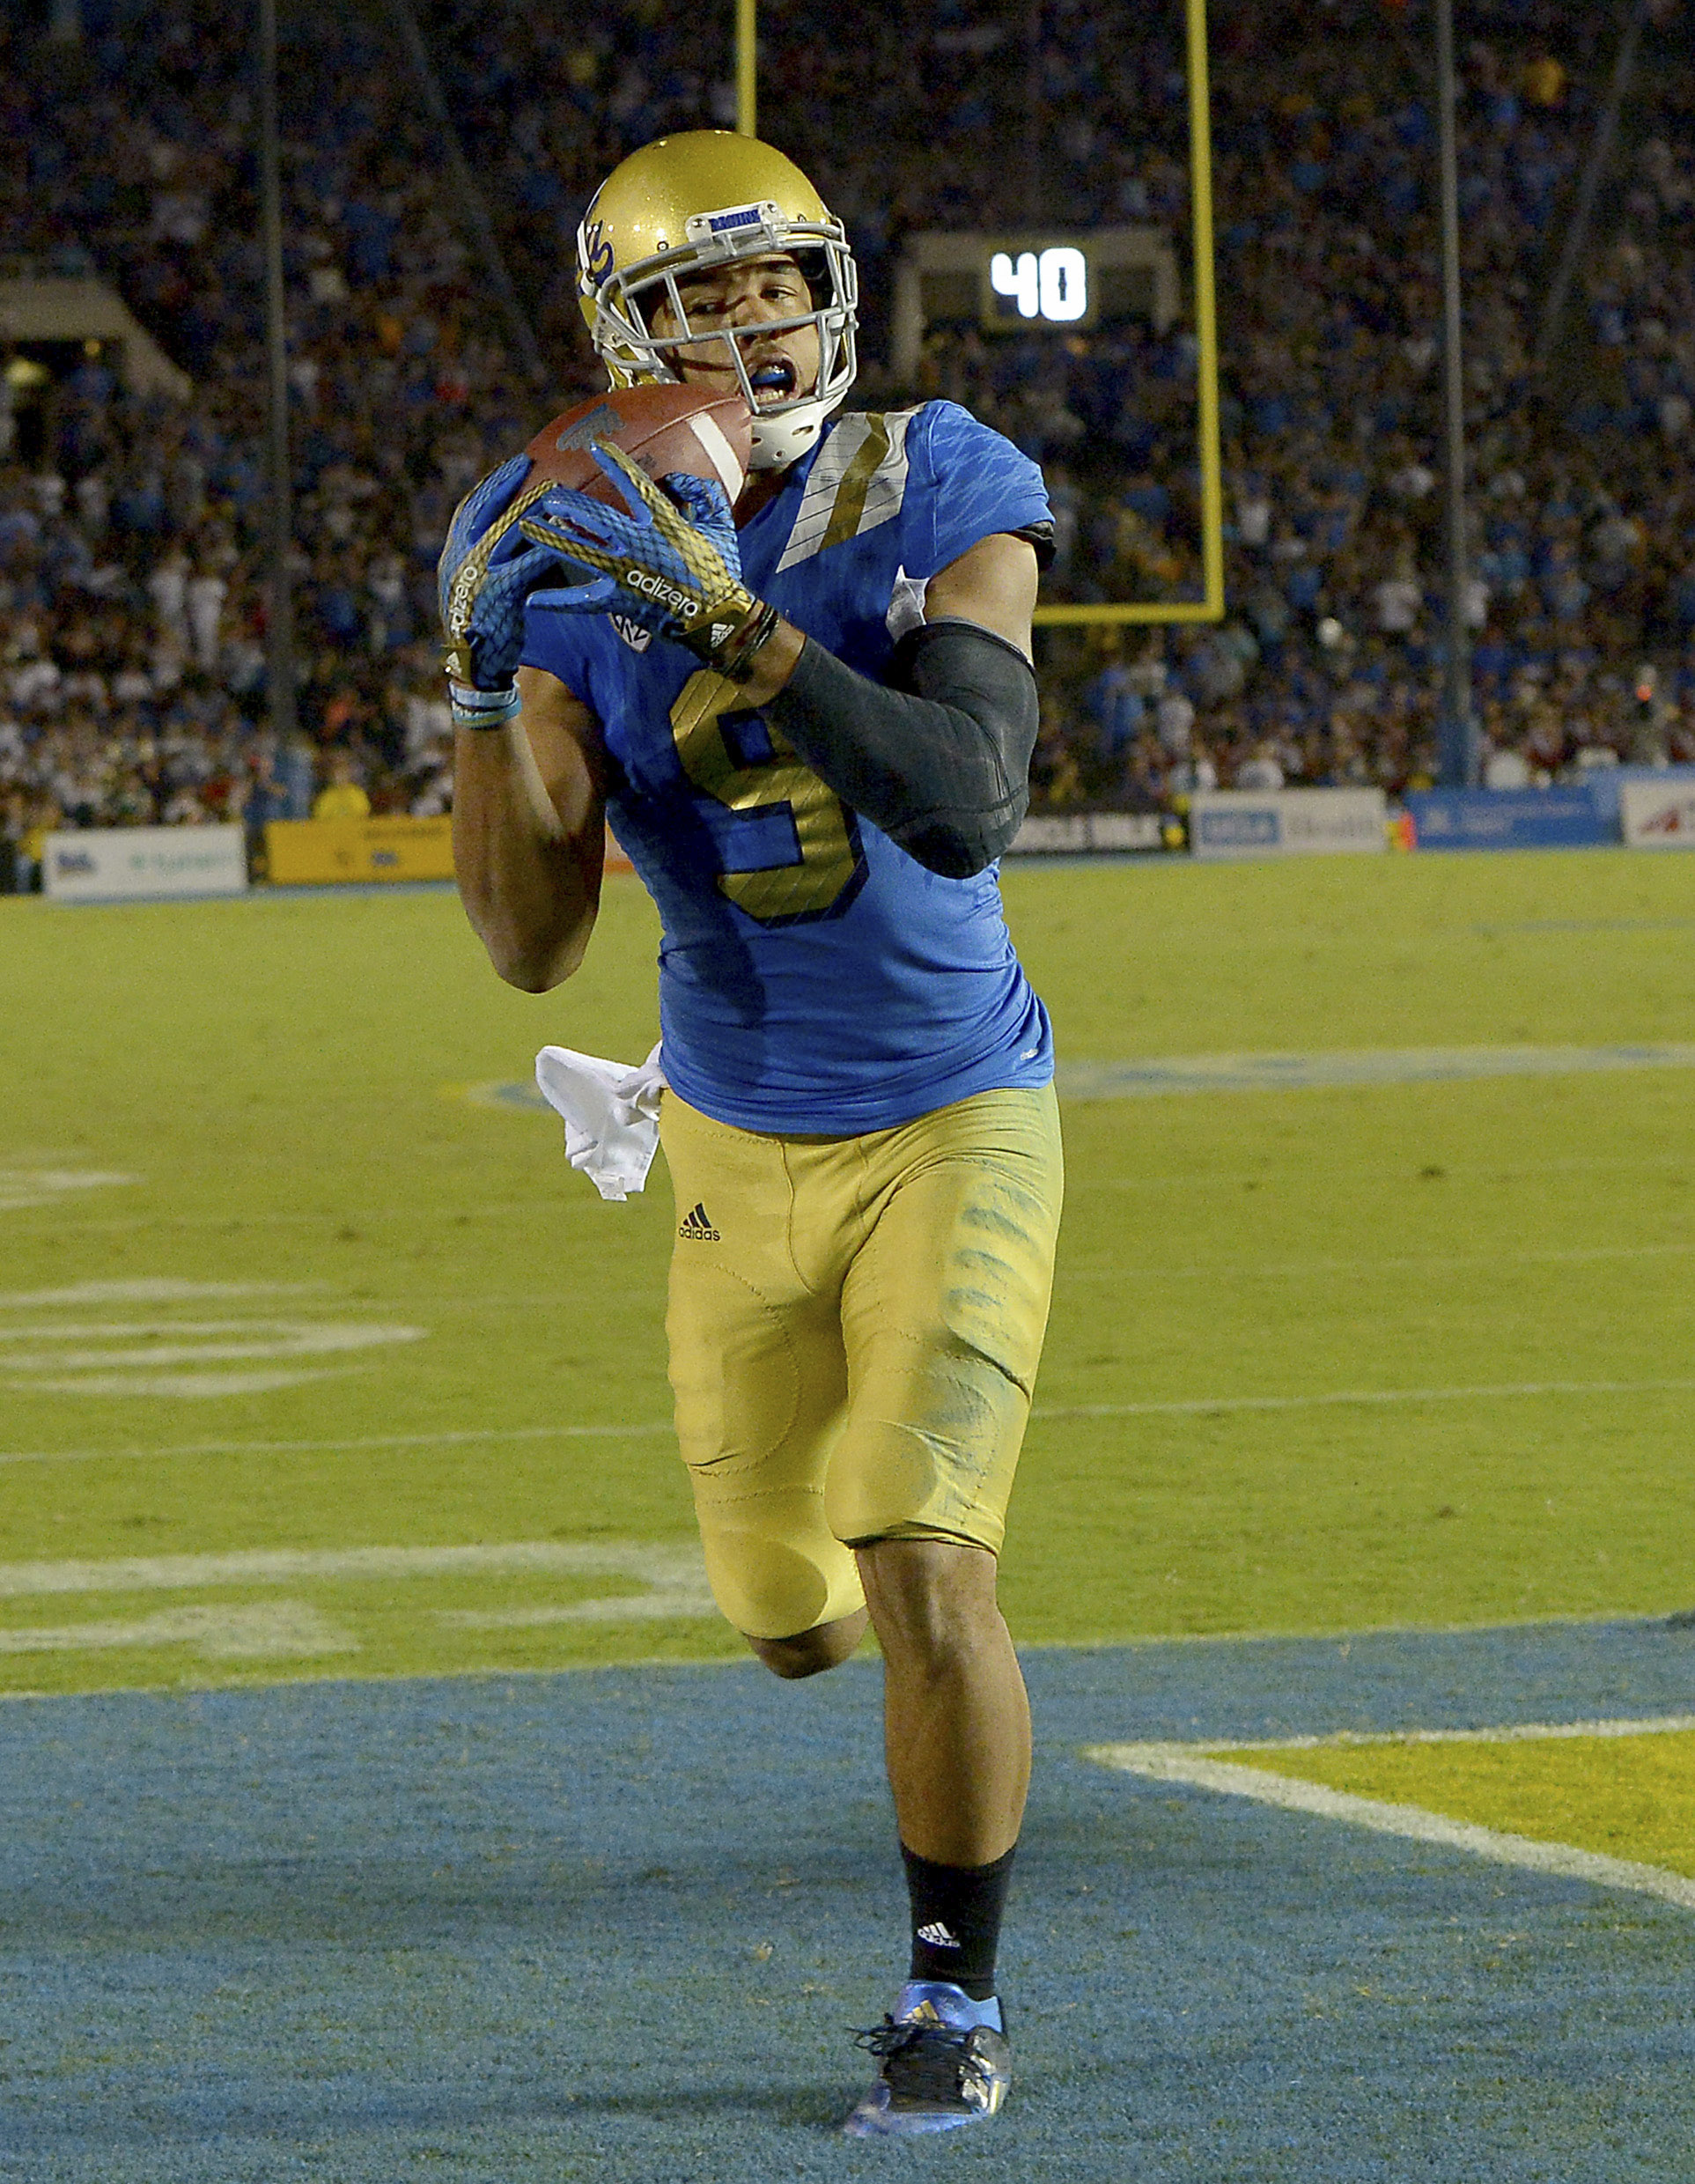 Jordan Payton's 4th quarter TD catch not only helped get the Bruins past BYU but also helped them move up one spot in each poll.